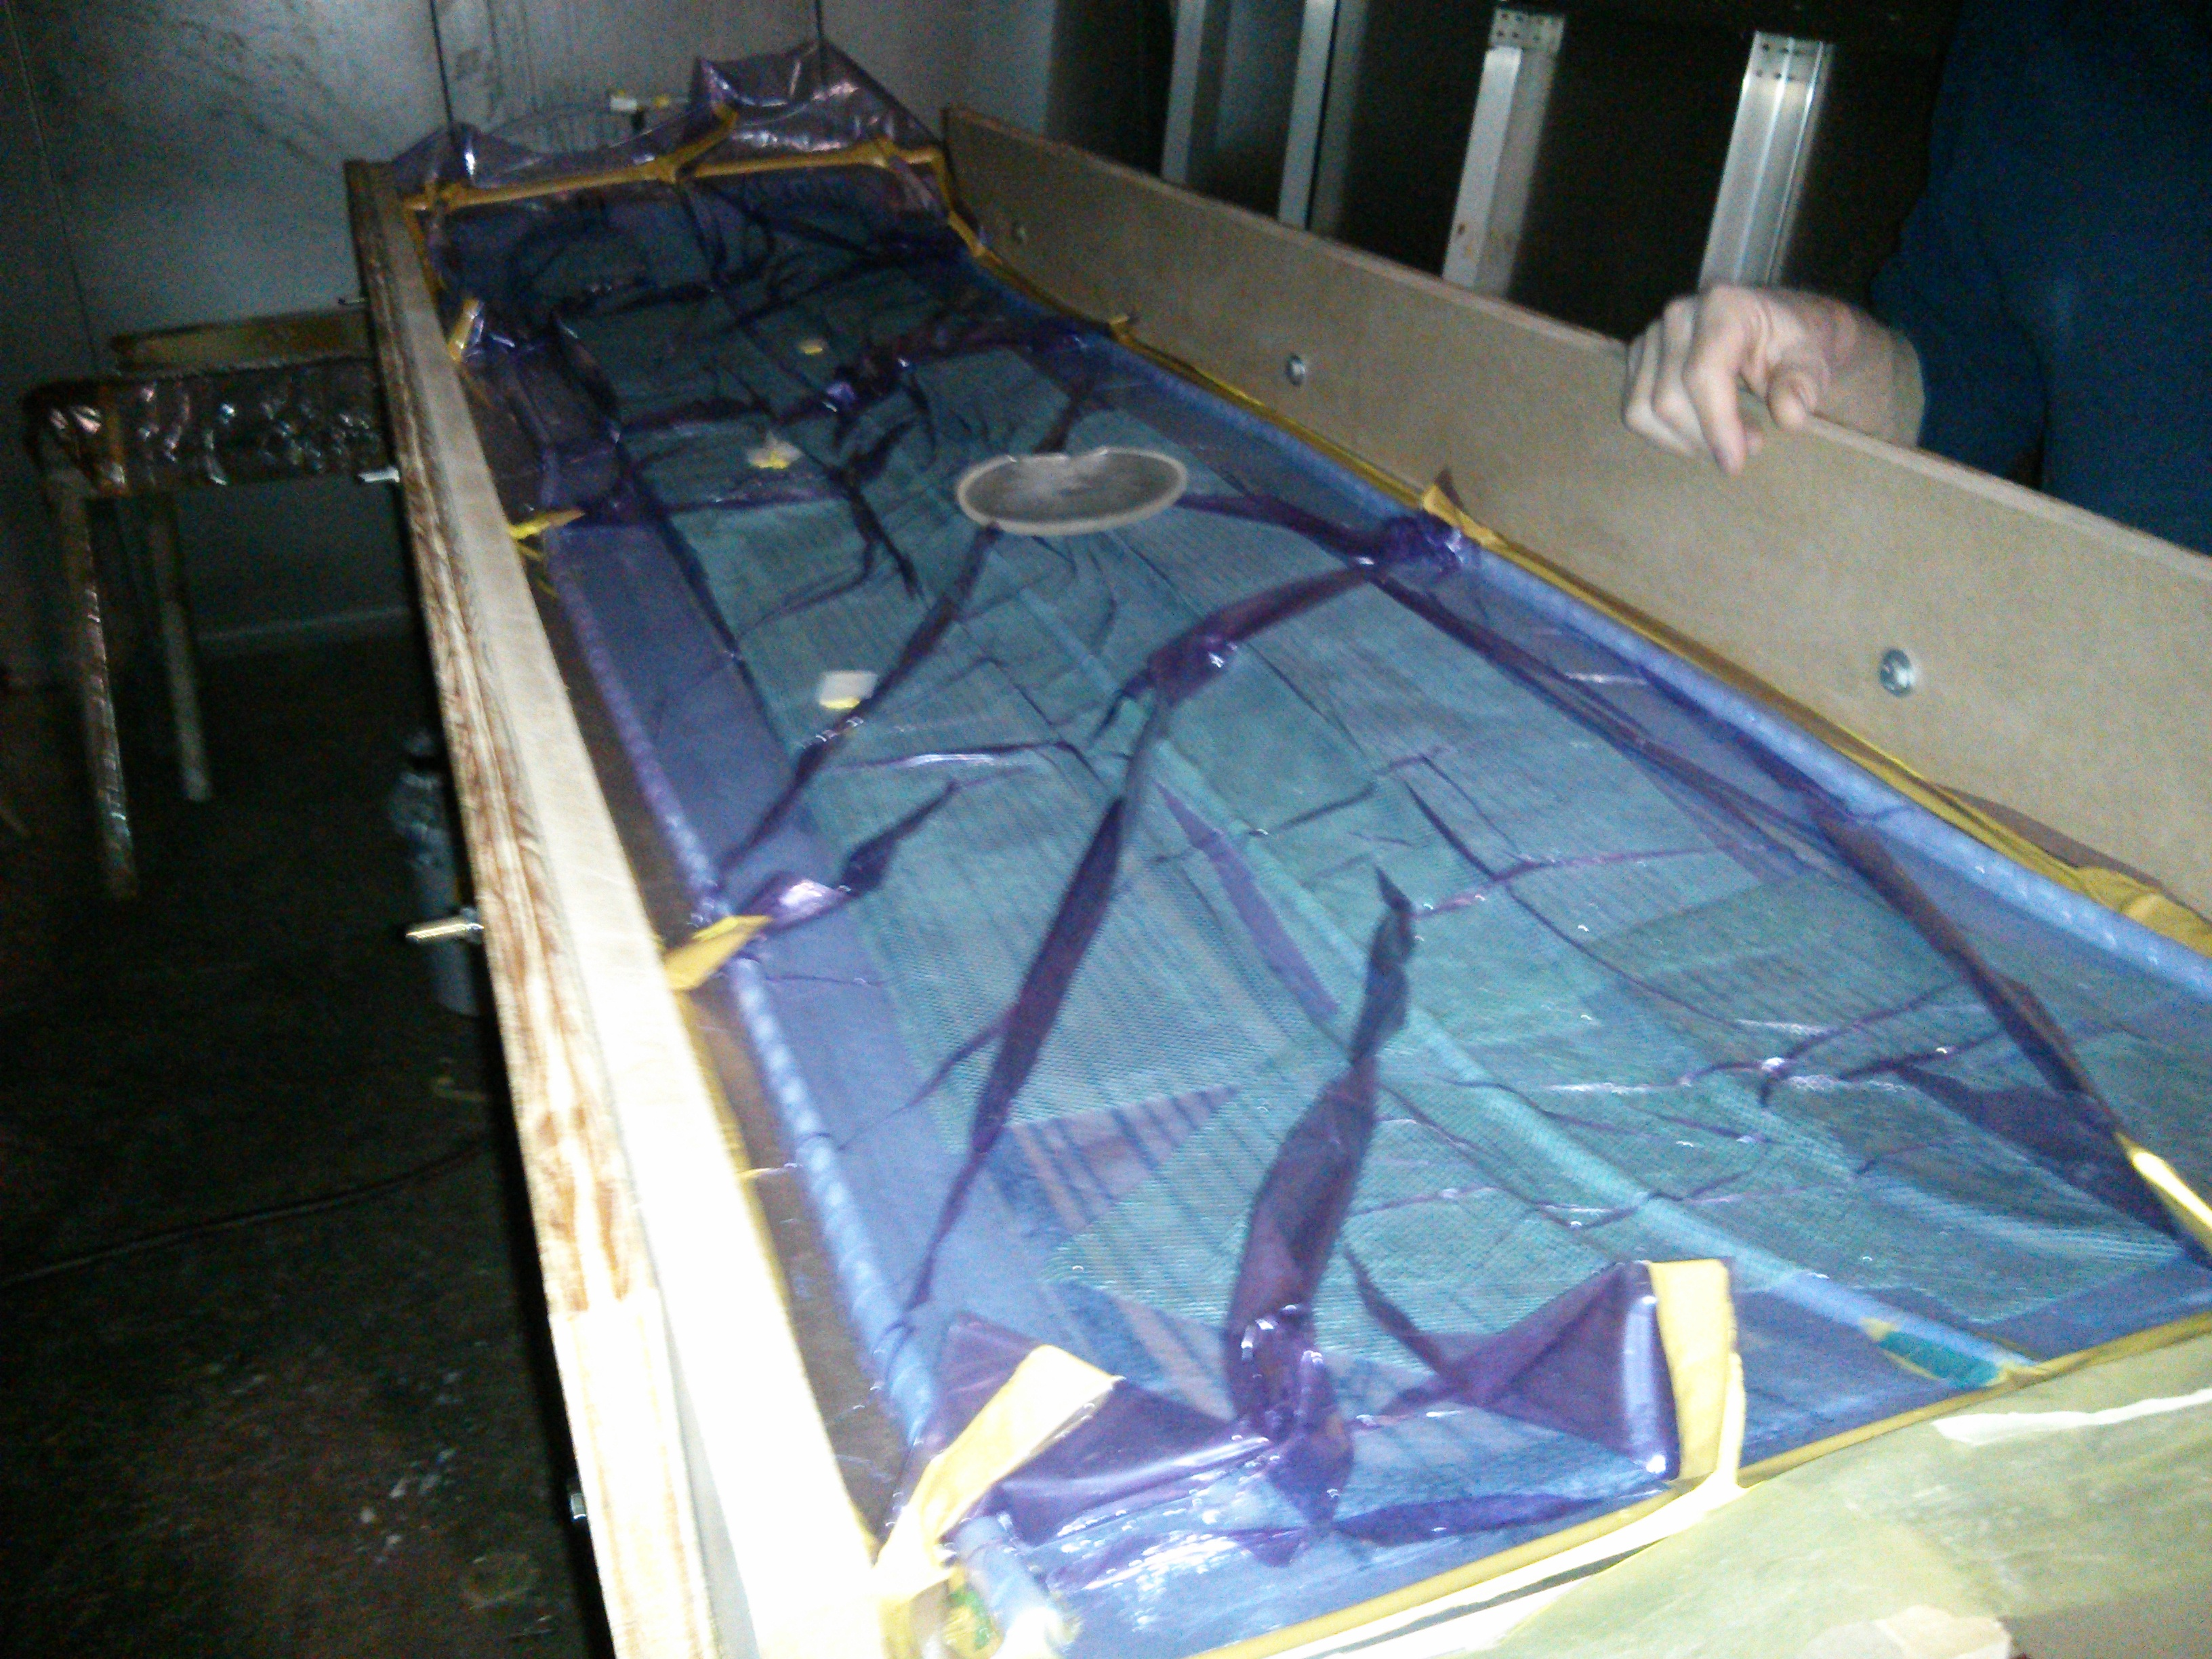 The IYRS composites program is where it becomes clear they aren't just a boatbuilding school: here's a set of skis drying in the walk-in kiln